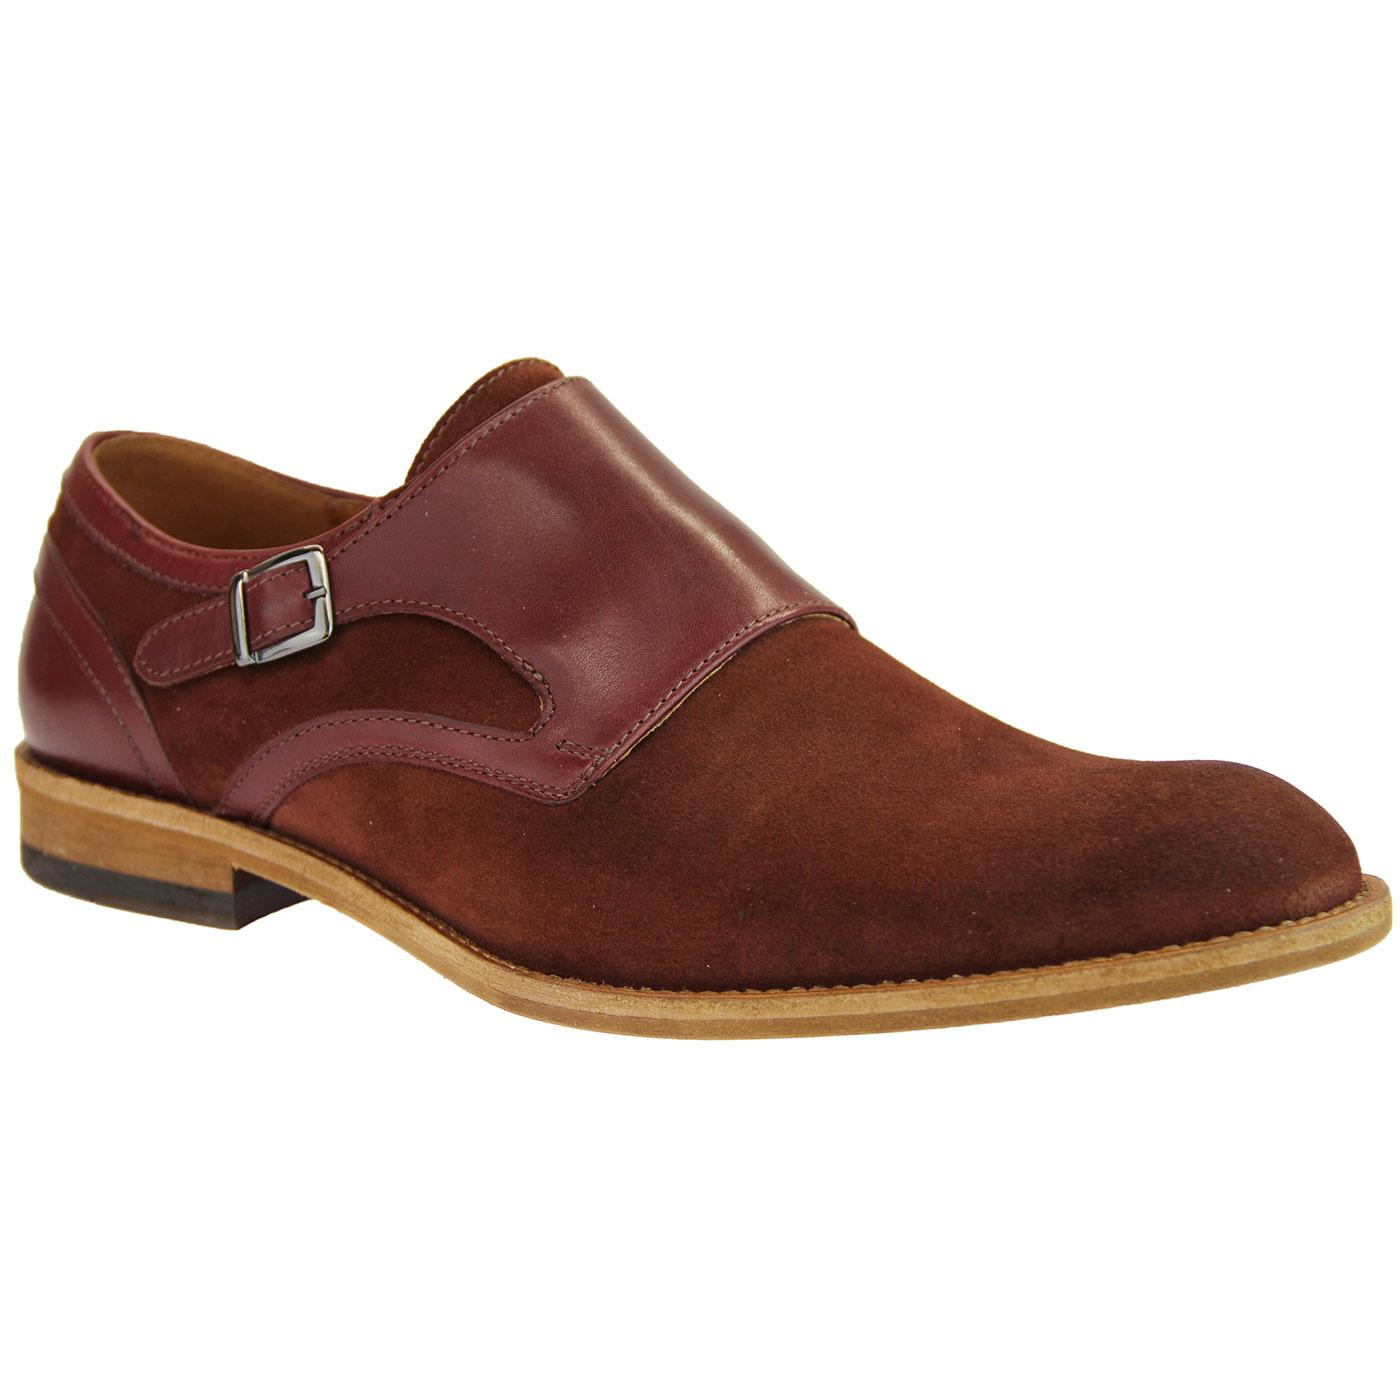 LACUZZO Retro Suede & Leather 60s Mod Monk Shoes